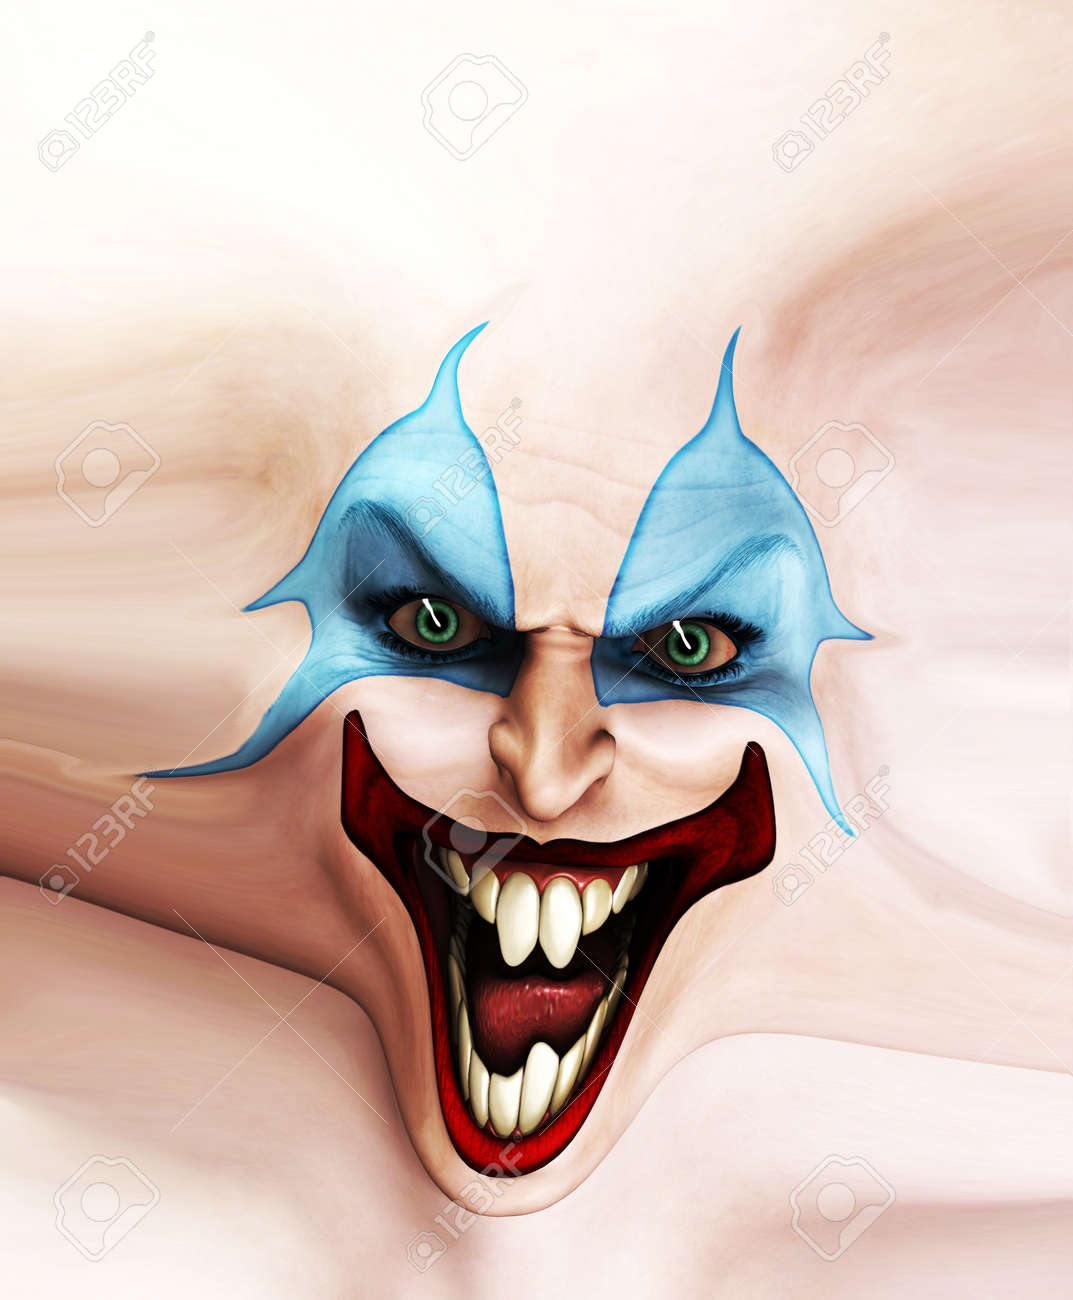 Very evil looking clown face on stretched skin. Stock Photo - 7768260